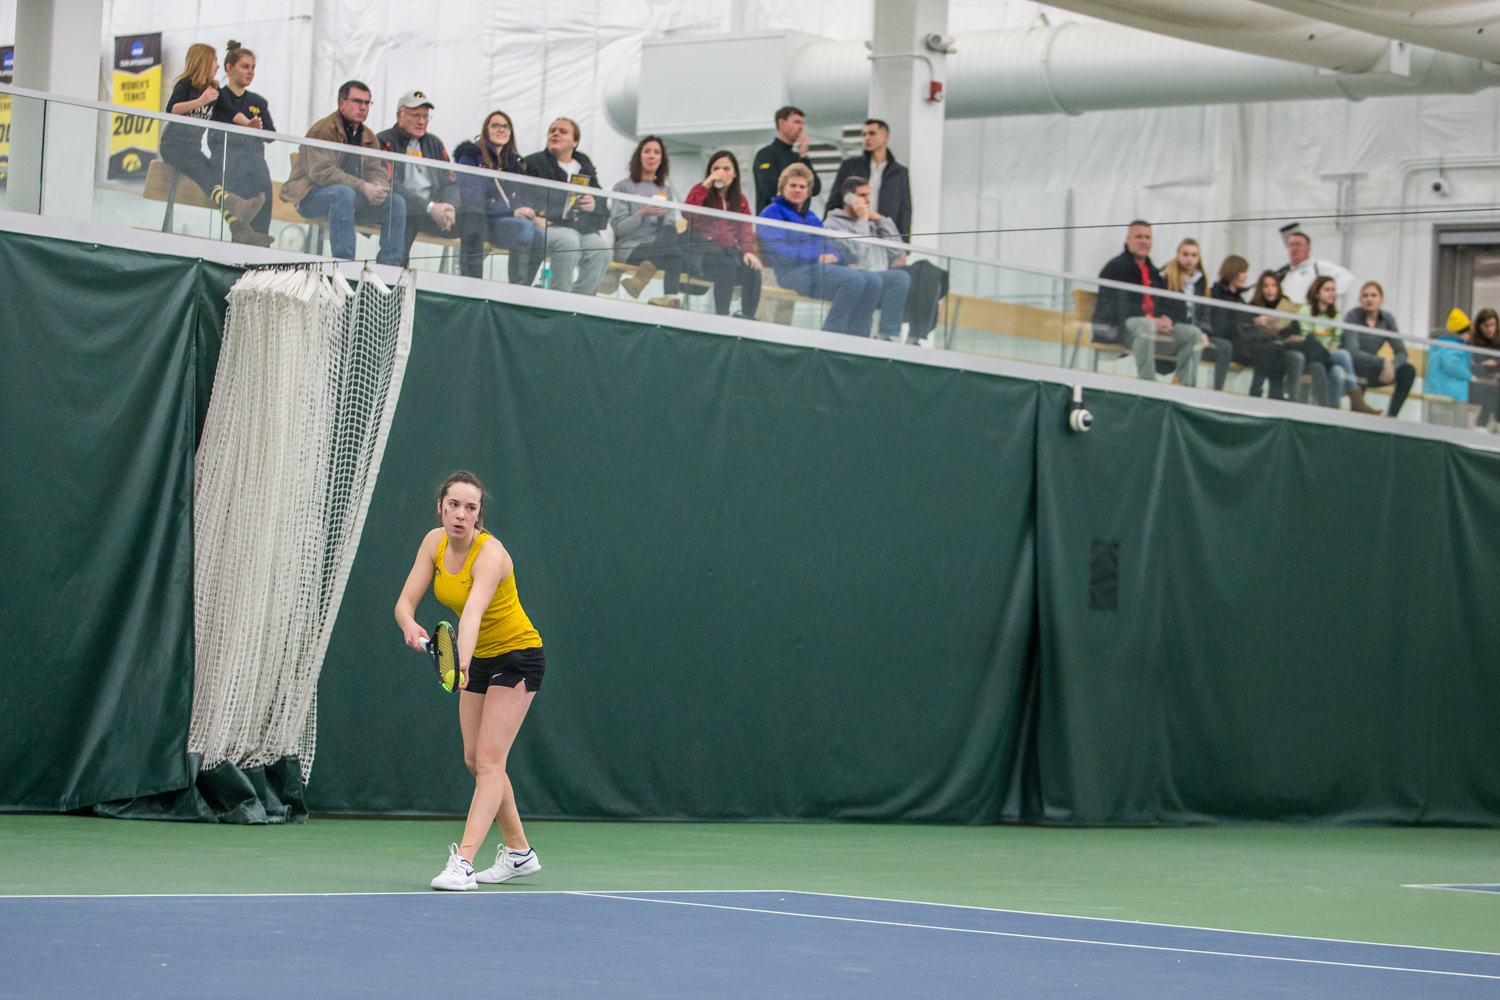 Iowa%27s+Samantha+Mannix+prepares+to+serve+during+a+women%27s+tennis+matchup+between+Iowa+and+Iowa+State+at+the+Hawkeye+Tennis+and+Recreation+Complex+on+Friday%2C+February+8%2C+2019.++The+Hawkeyes+dropped+the+doubles+point+but+swept+singles+matches%2C+defeating+the+Cyclones+4-1.